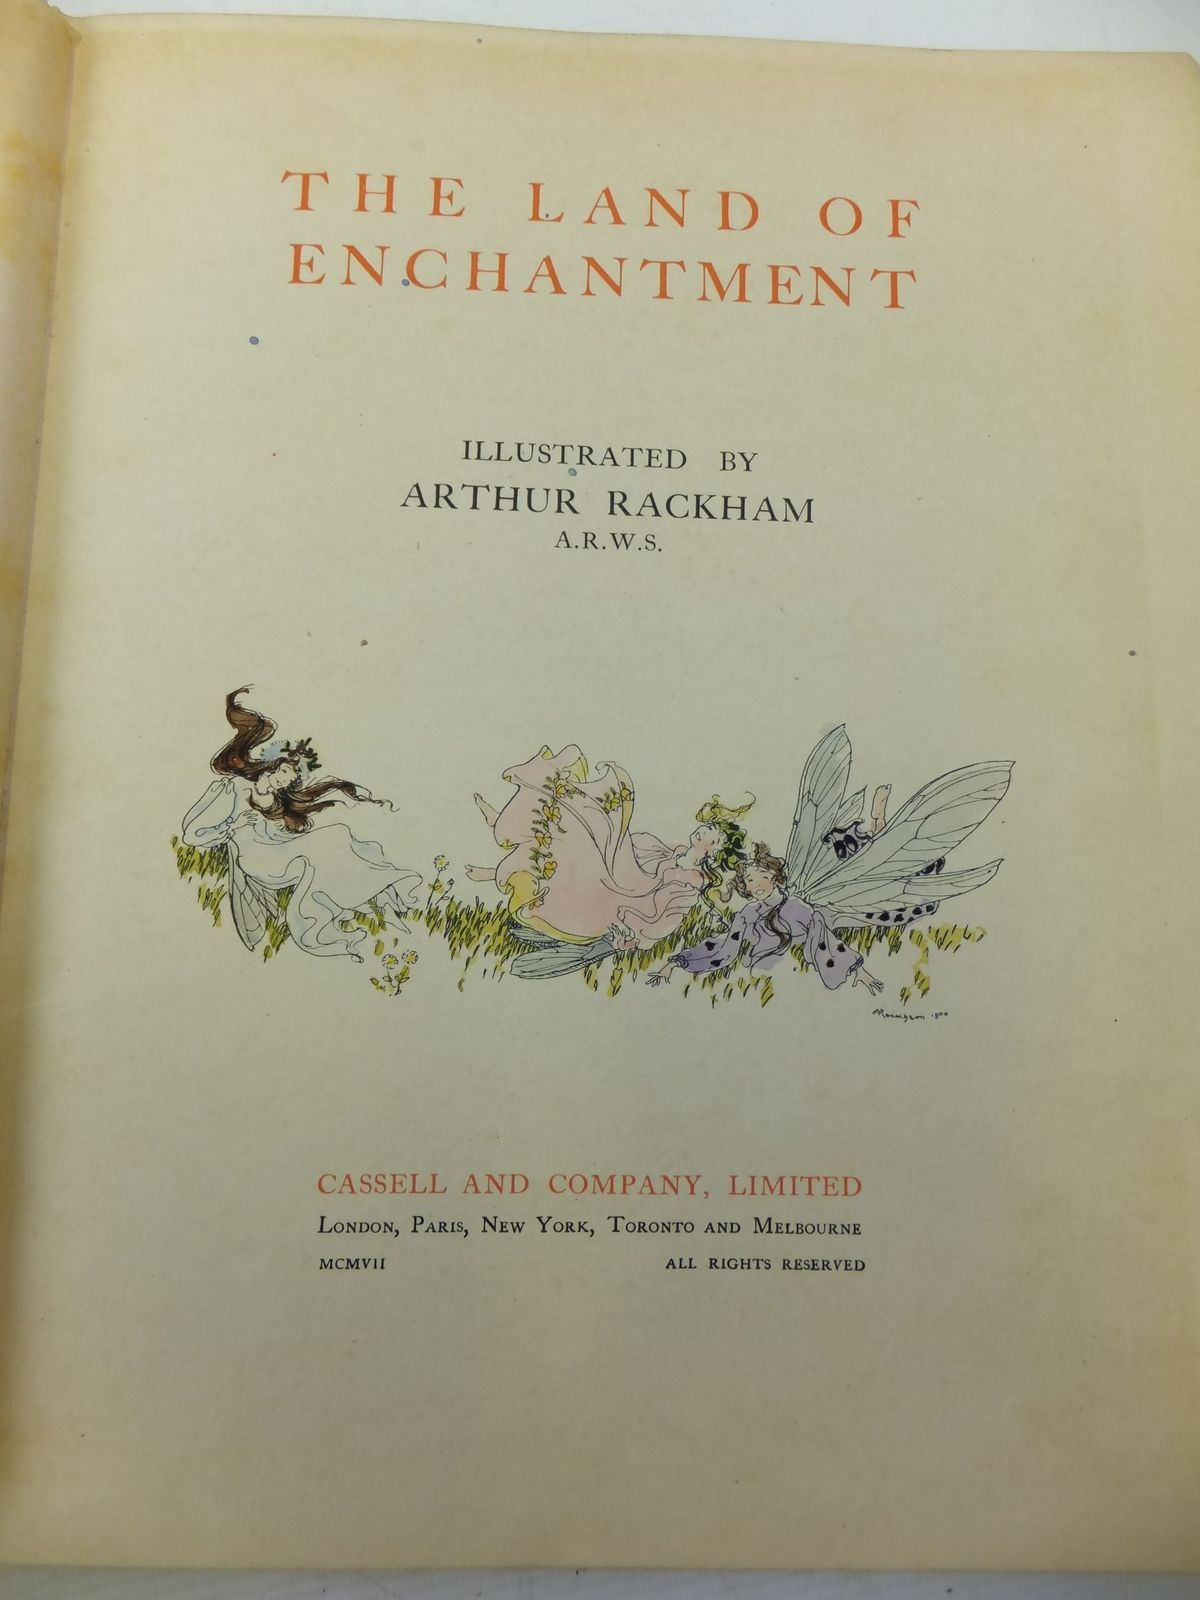 Photo of THE LAND OF ENCHANTMENT written by Bonser, A.E. Woolf, Sidney Bucheim, E.S. illustrated by Rackham, Arthur published by Cassell & Co. Ltd. (STOCK CODE: 2113416)  for sale by Stella & Rose's Books